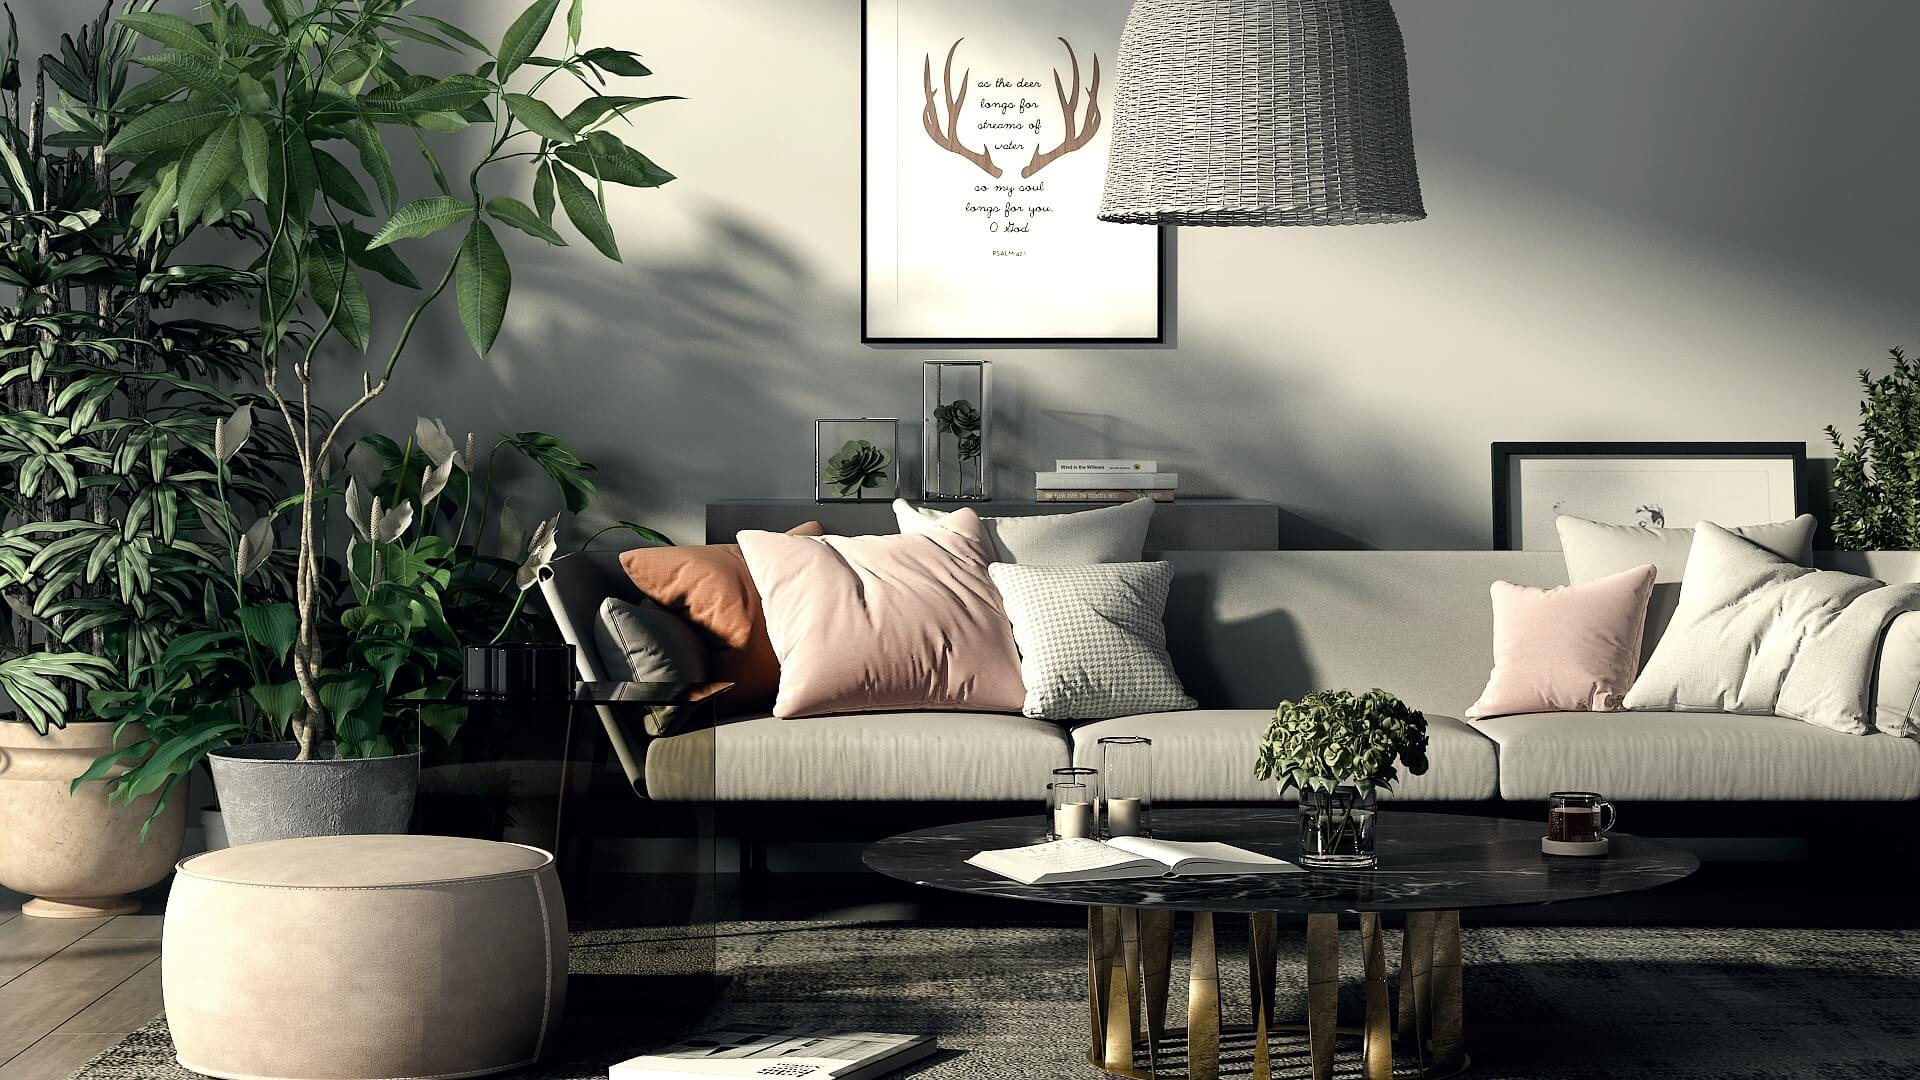 Modern Table Lamp for Bedroom Luxury Render Of the Week Contemporary Bohemian Chic